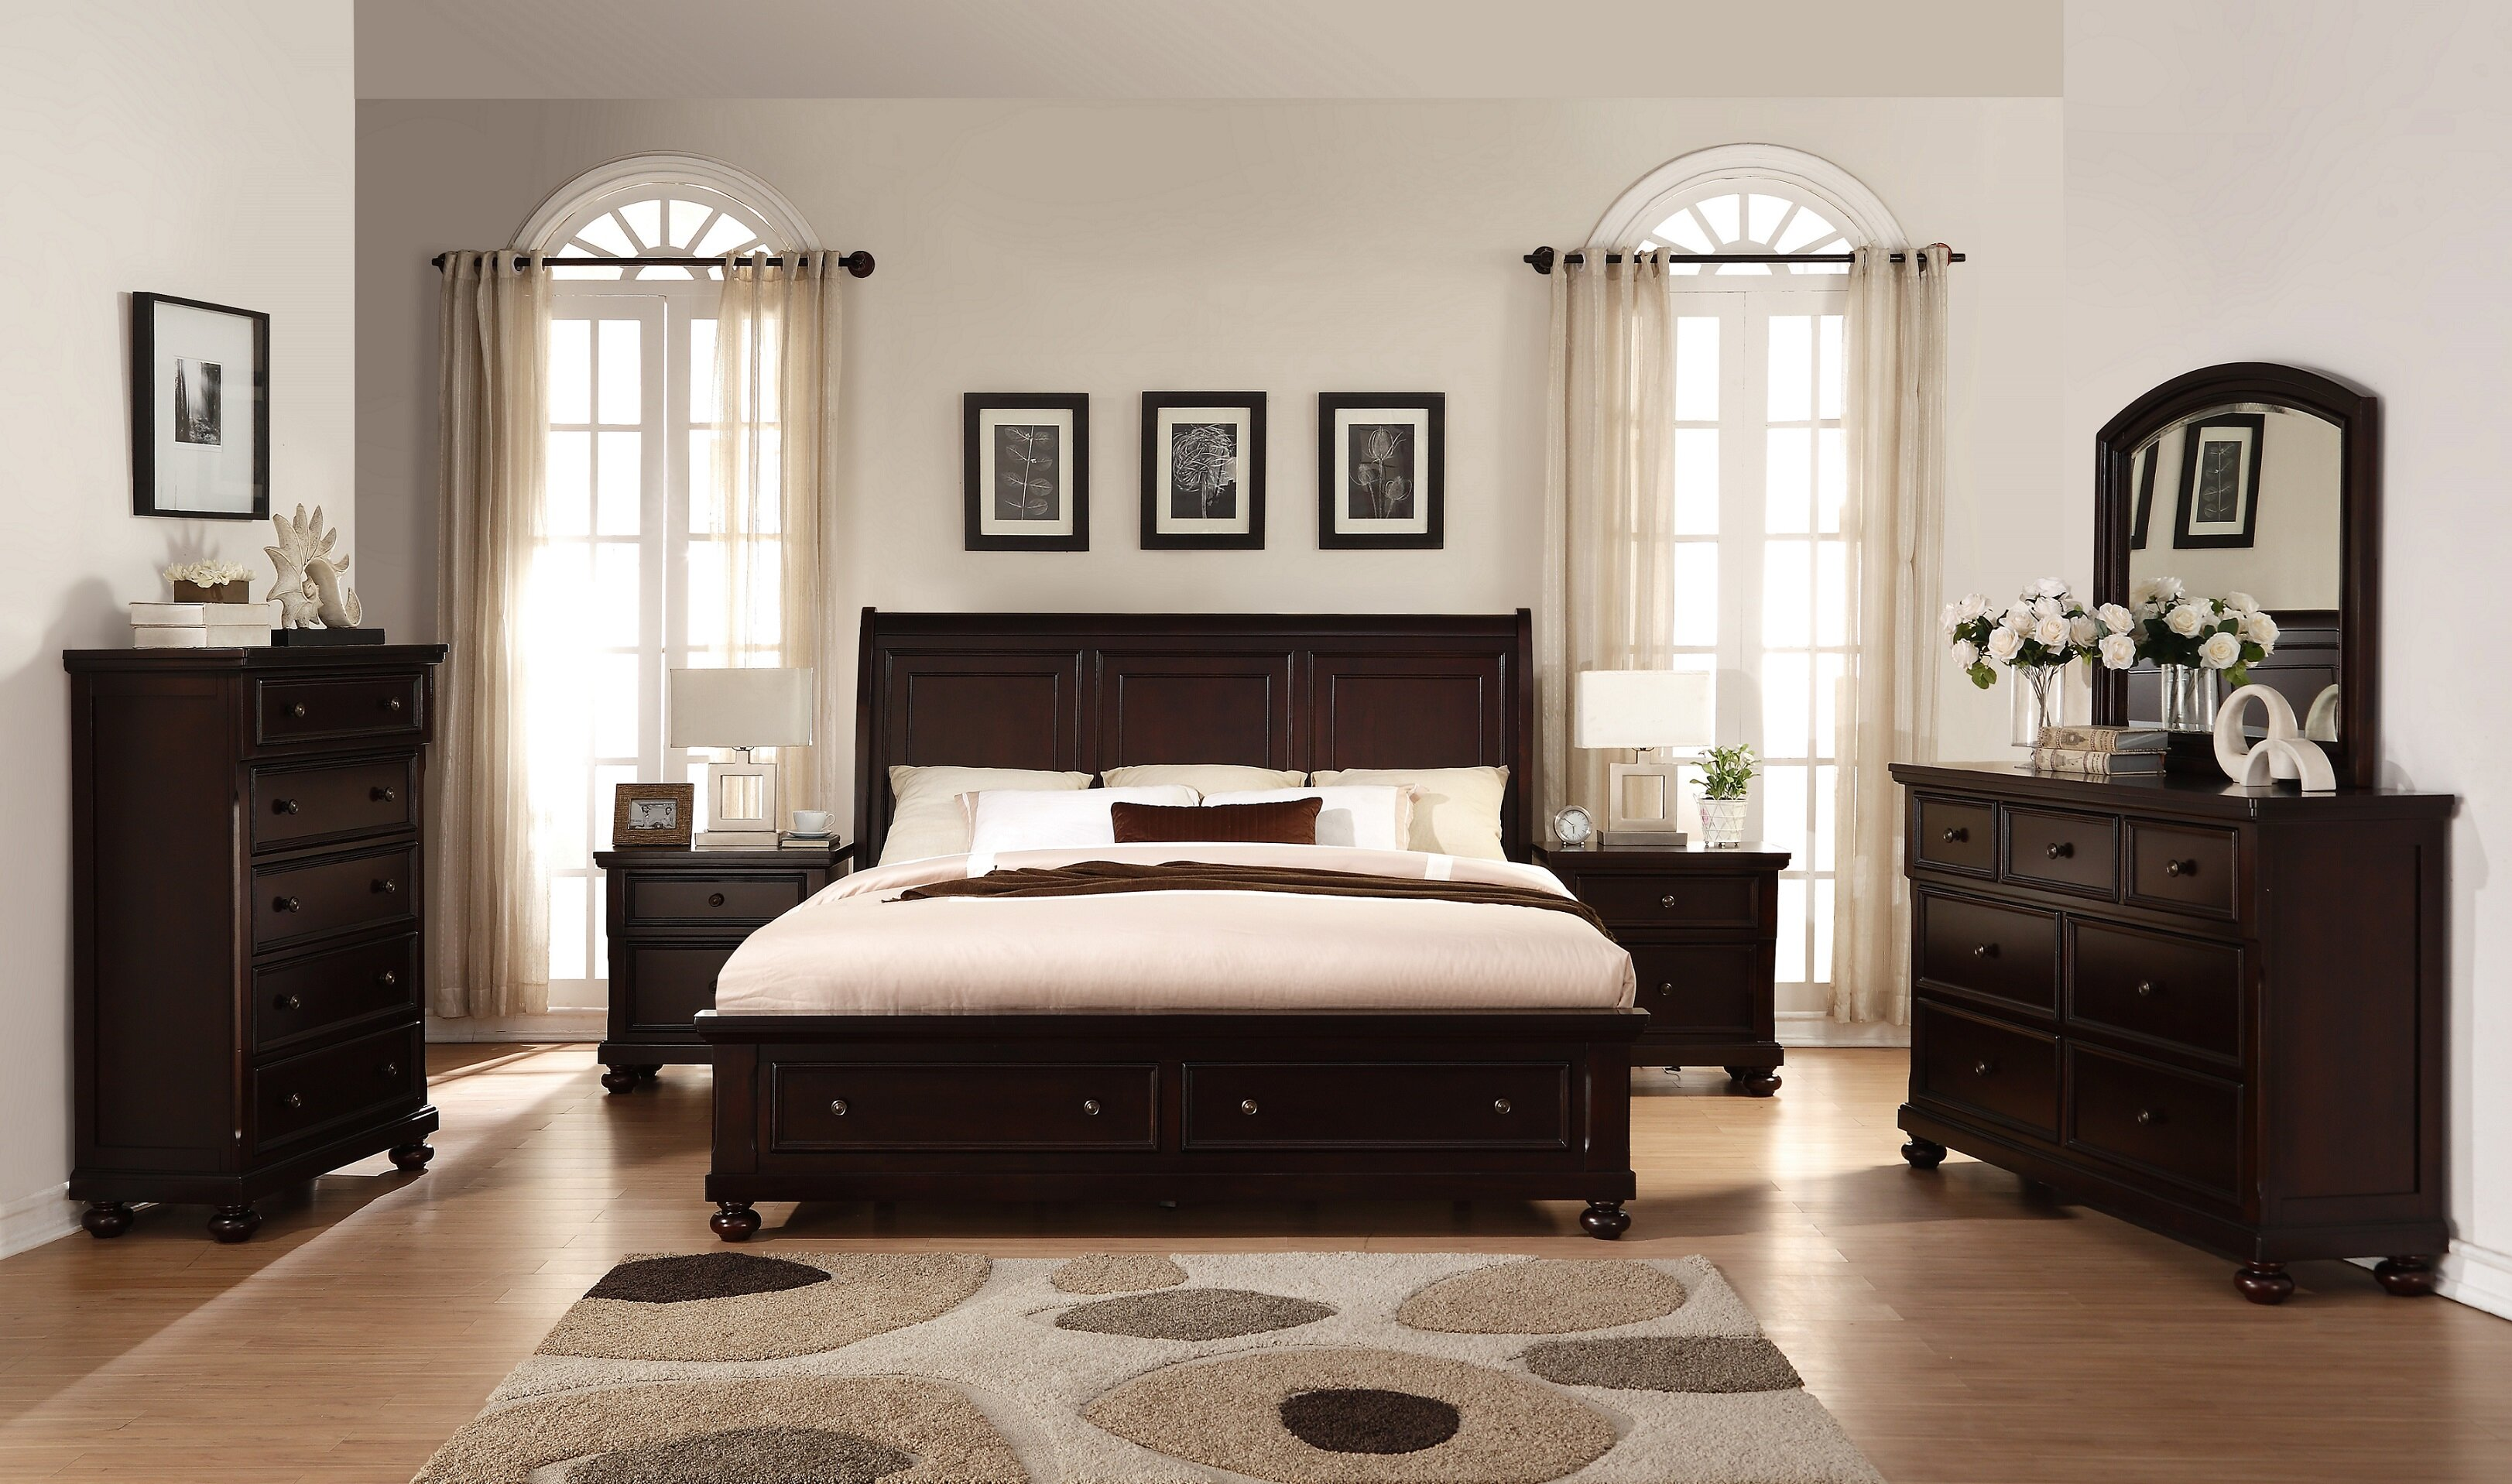 Breakwater Bay Jaimes King Platform Solid Wood 6 Piece Bedroom Set